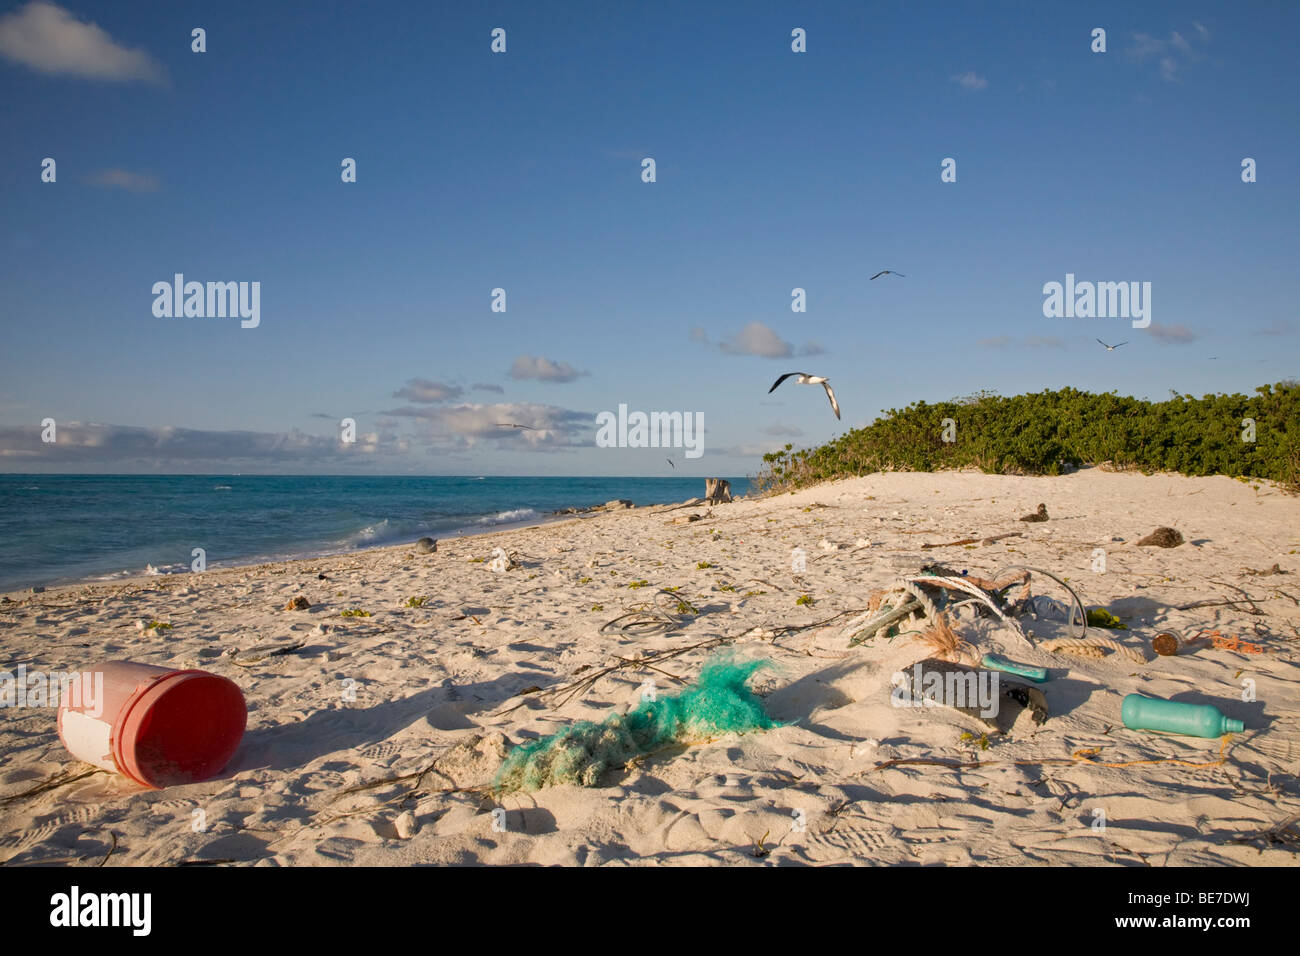 Marine debris washed ashore on beach of a North Pacific island Stock Photo